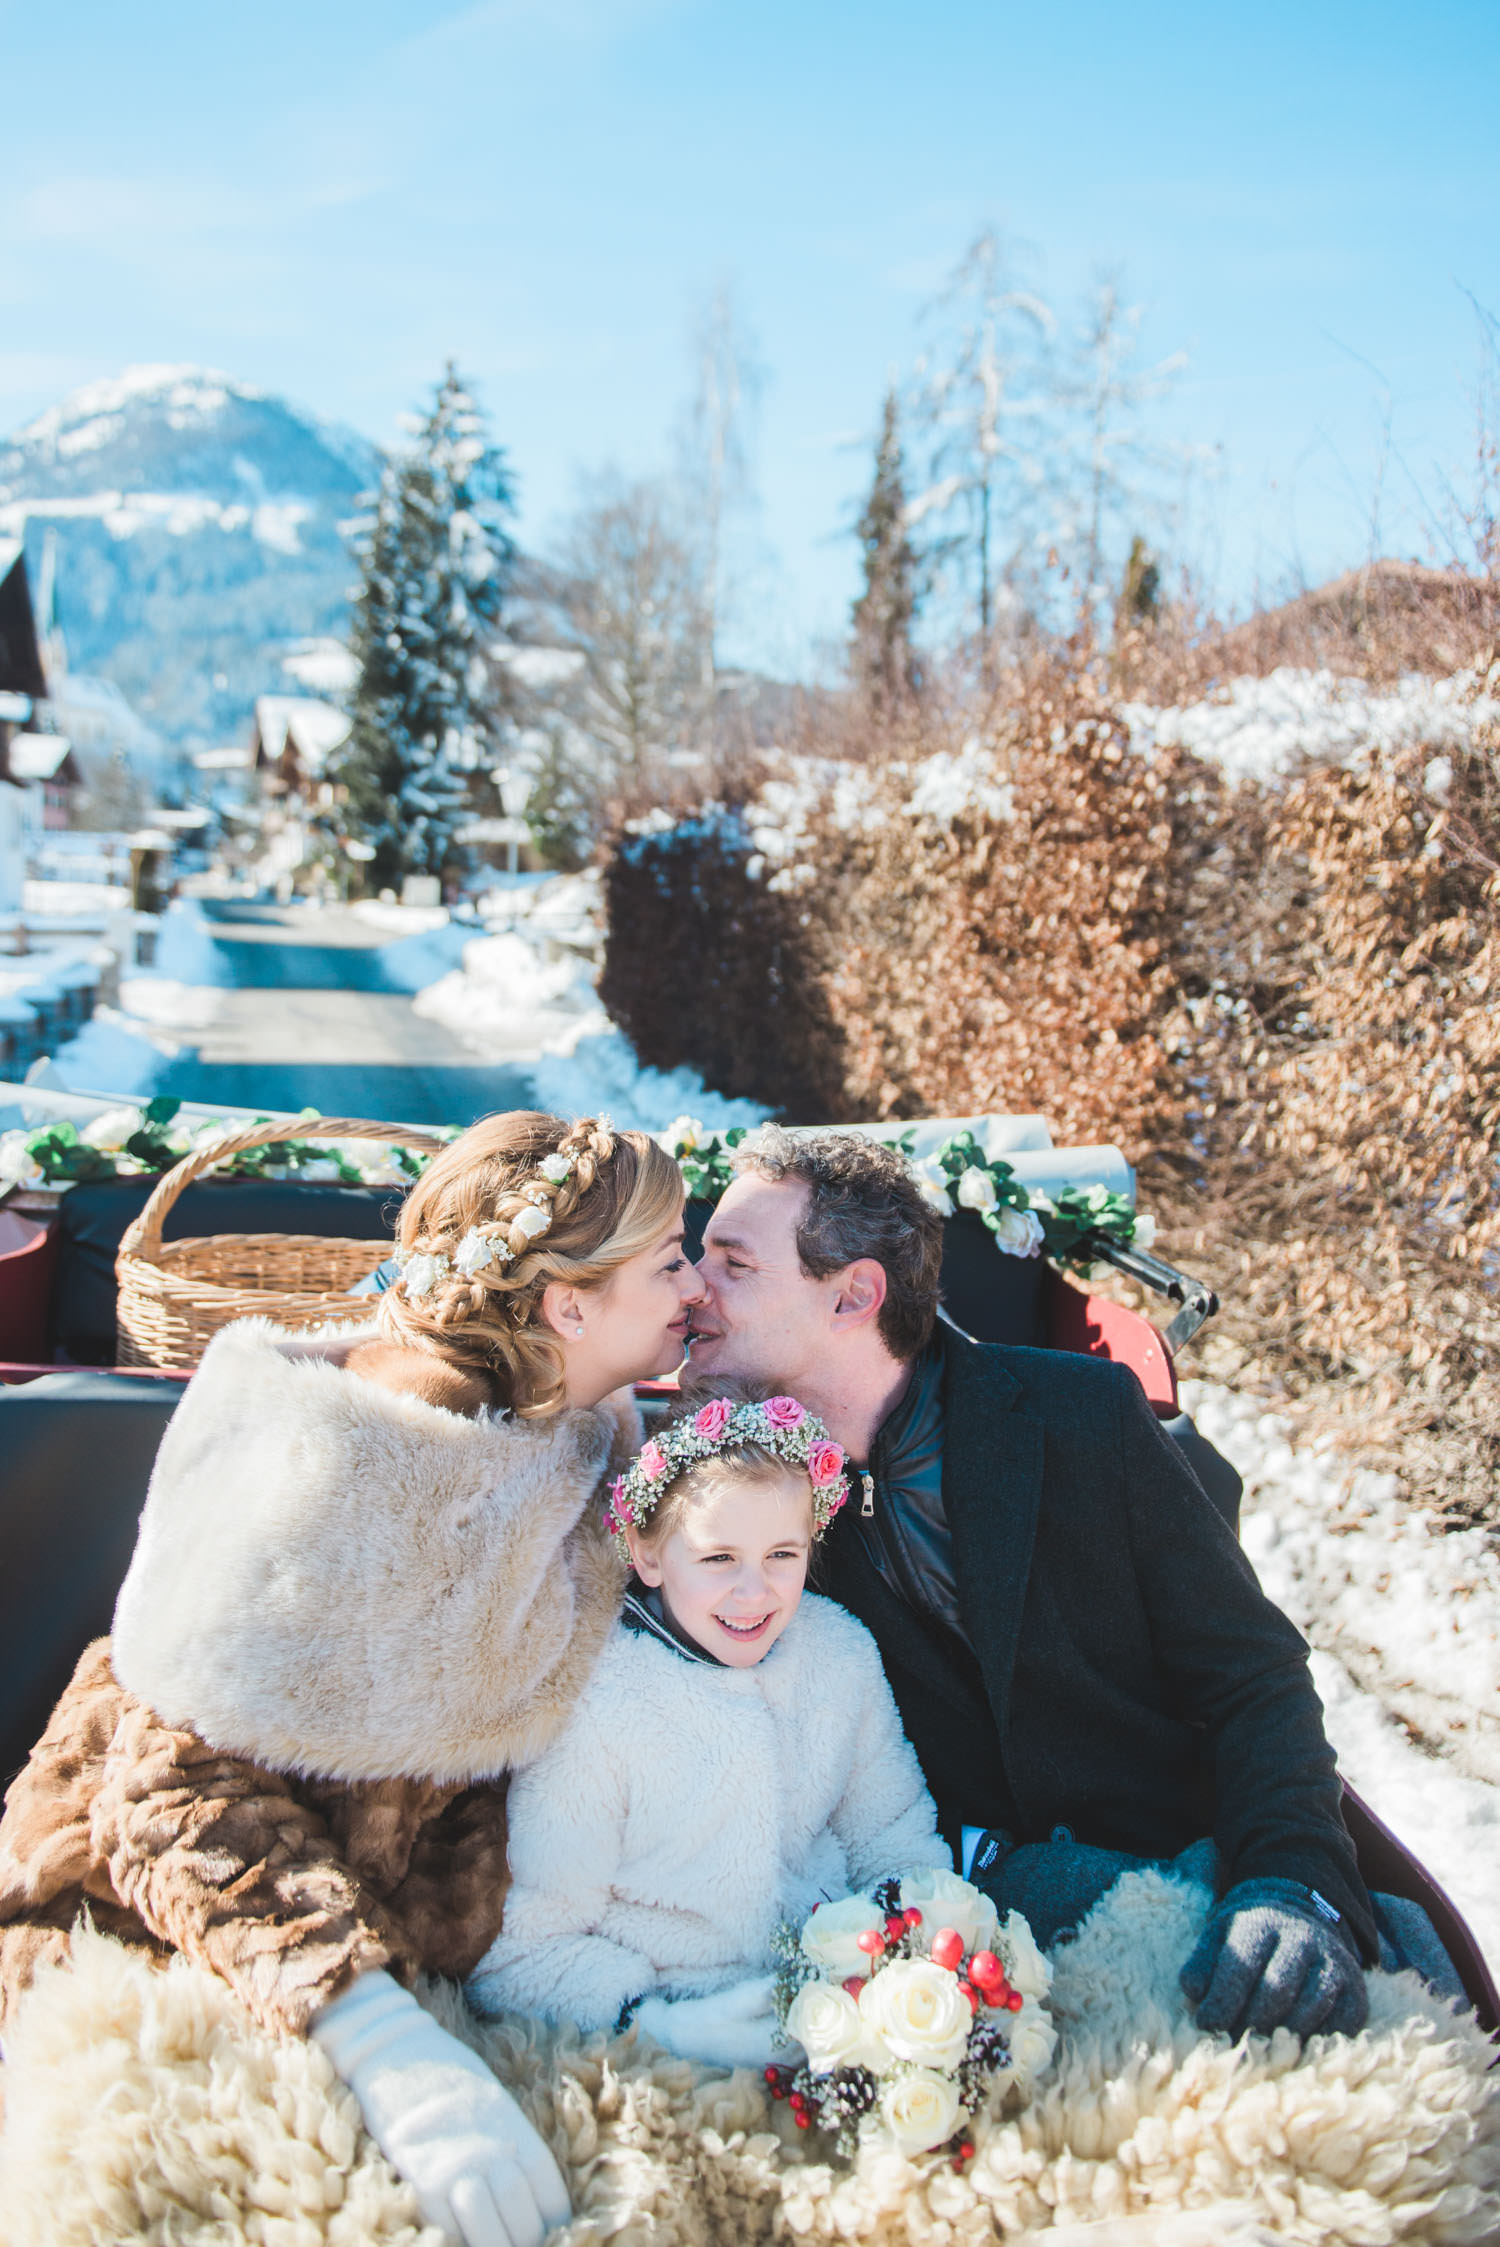 A bride, groom and their daughter in a sleigh during a photo shoot on their wedding day in Austria